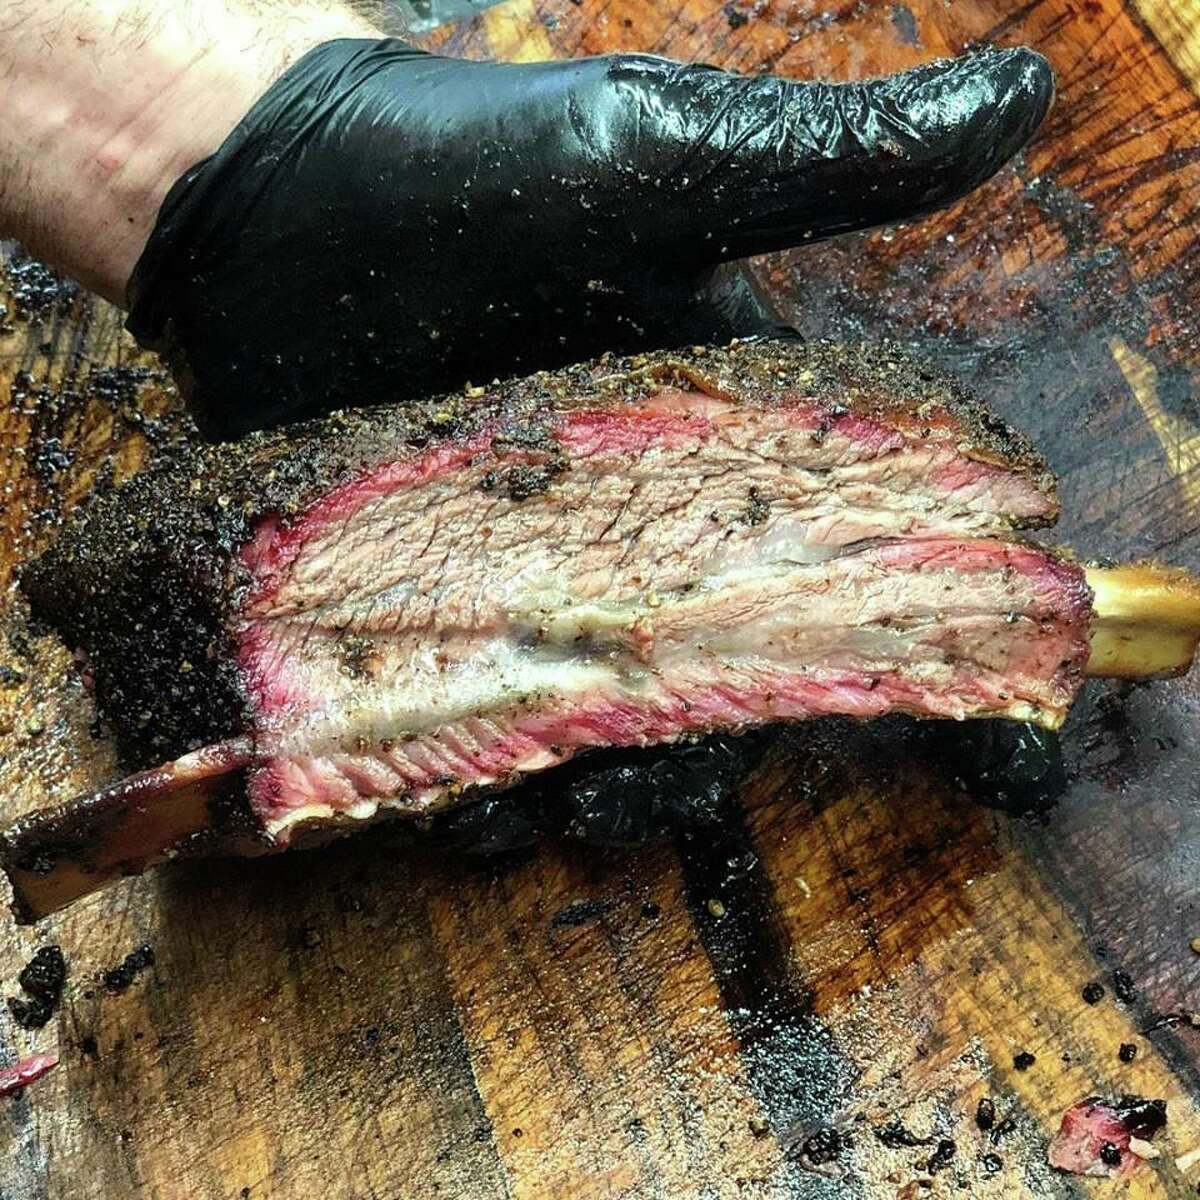 Brett's Barbecue Shop in Katy has been selling out of its smoked meats daily since opening in late 2018 at 606 S. Mason Road. Brett's short ribs have been named one of the best barbecue bites of 2019 by Texas Monthly.